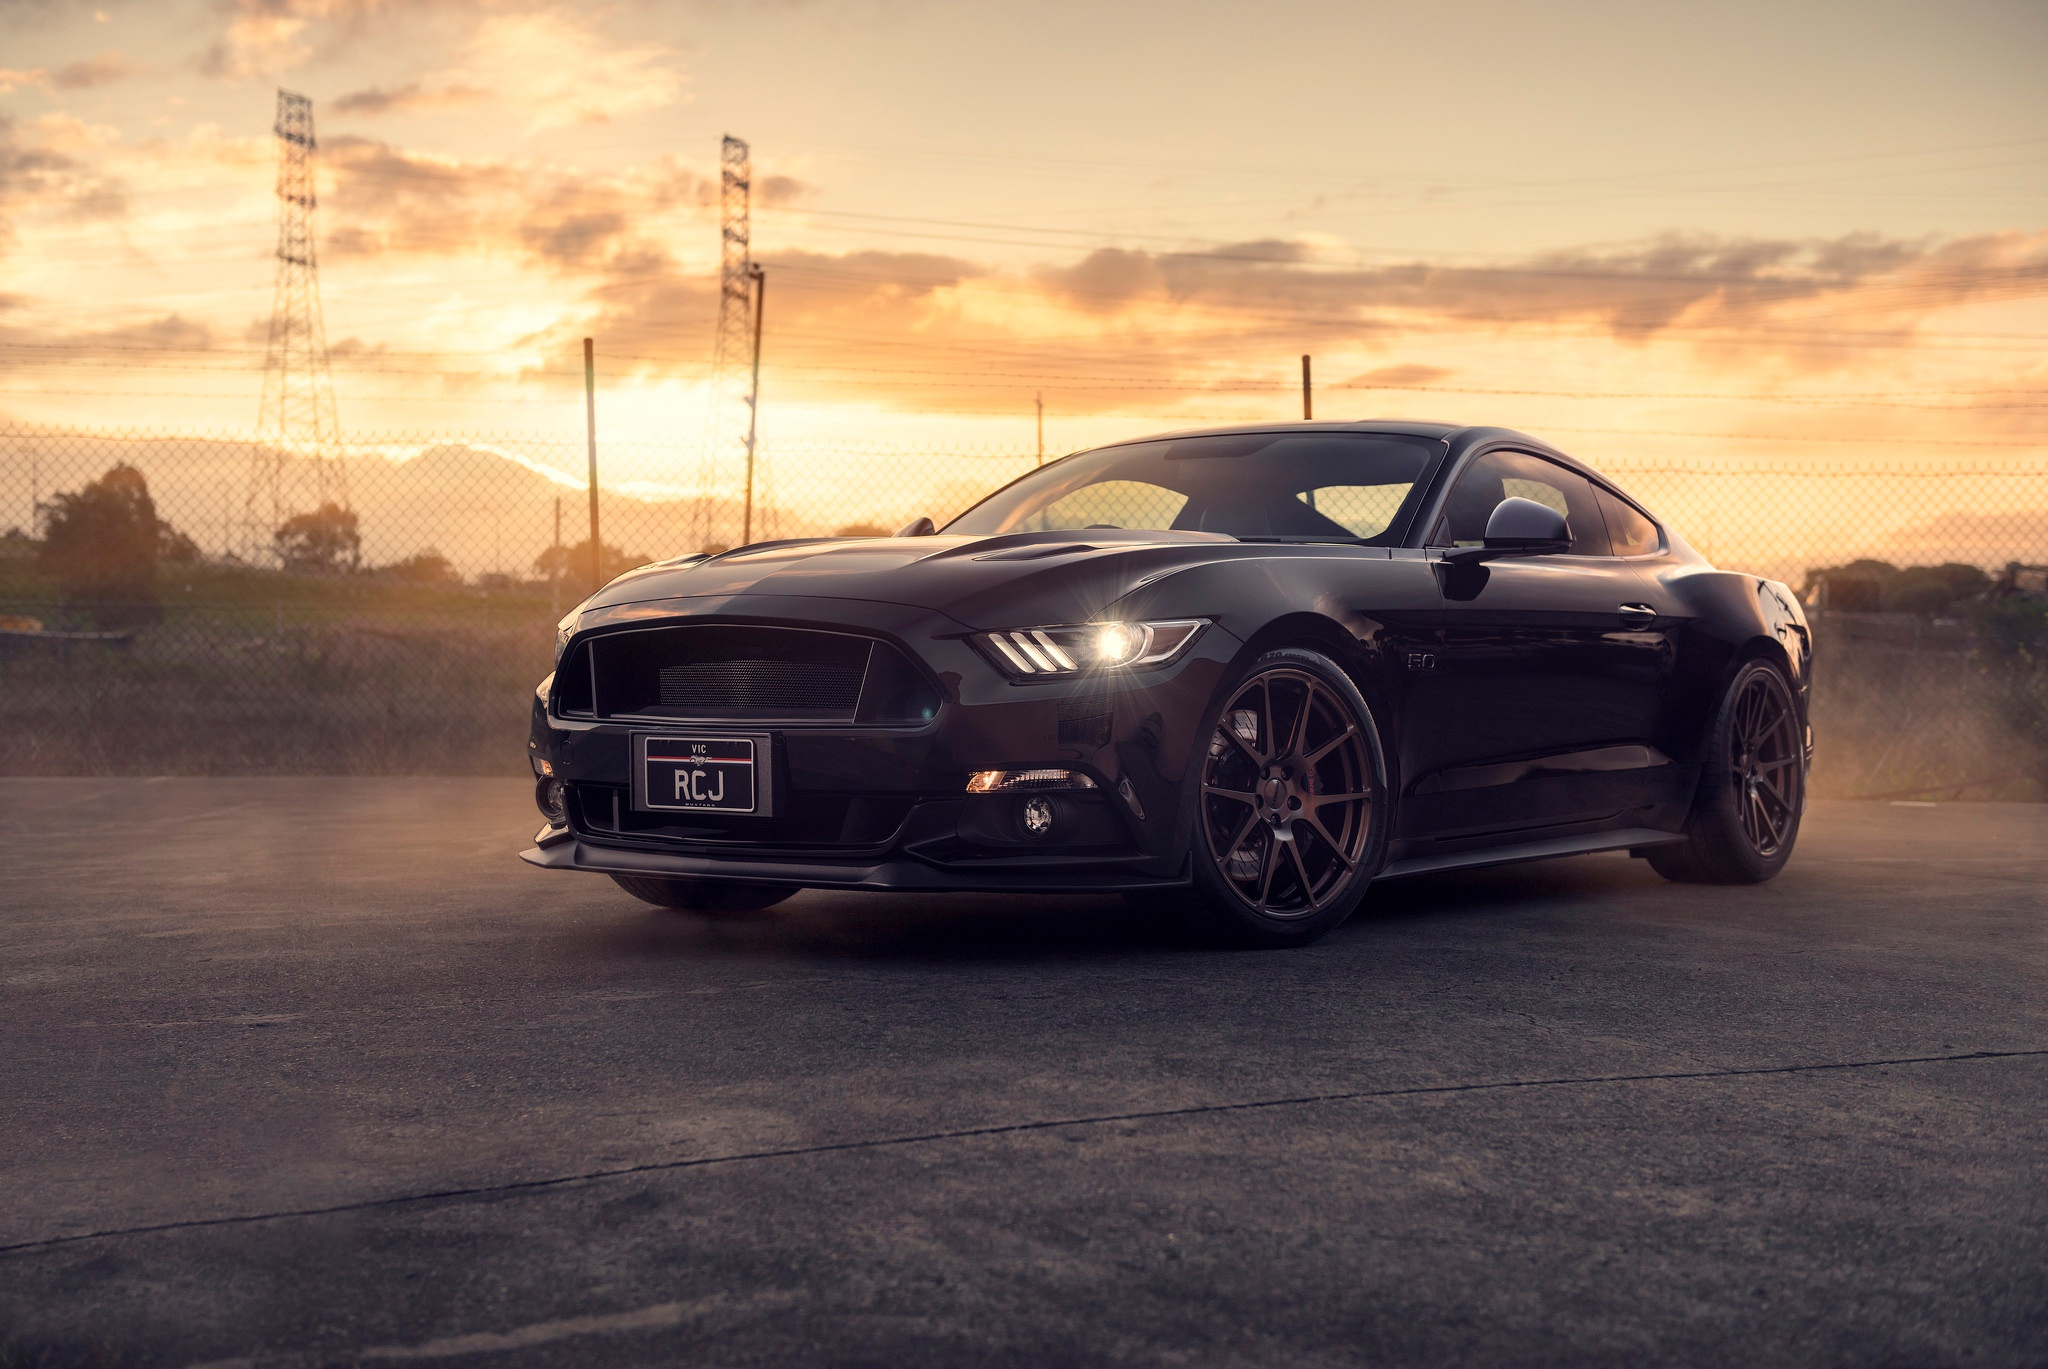 Ford Mustang HD Wallpaper   Background Image   2048x1369 ...